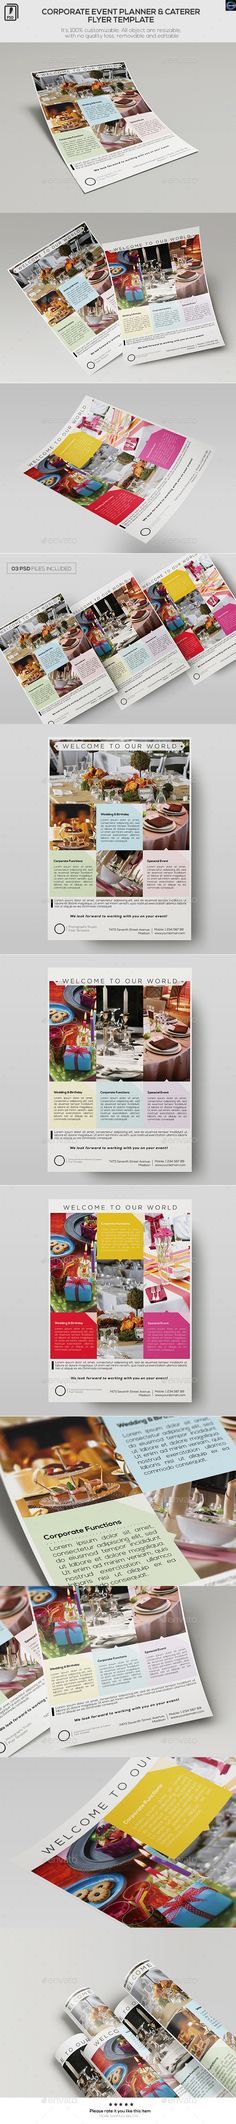 Food Catering - Flyer Template Flyers, Catering and Flyer template - for rent flyer template